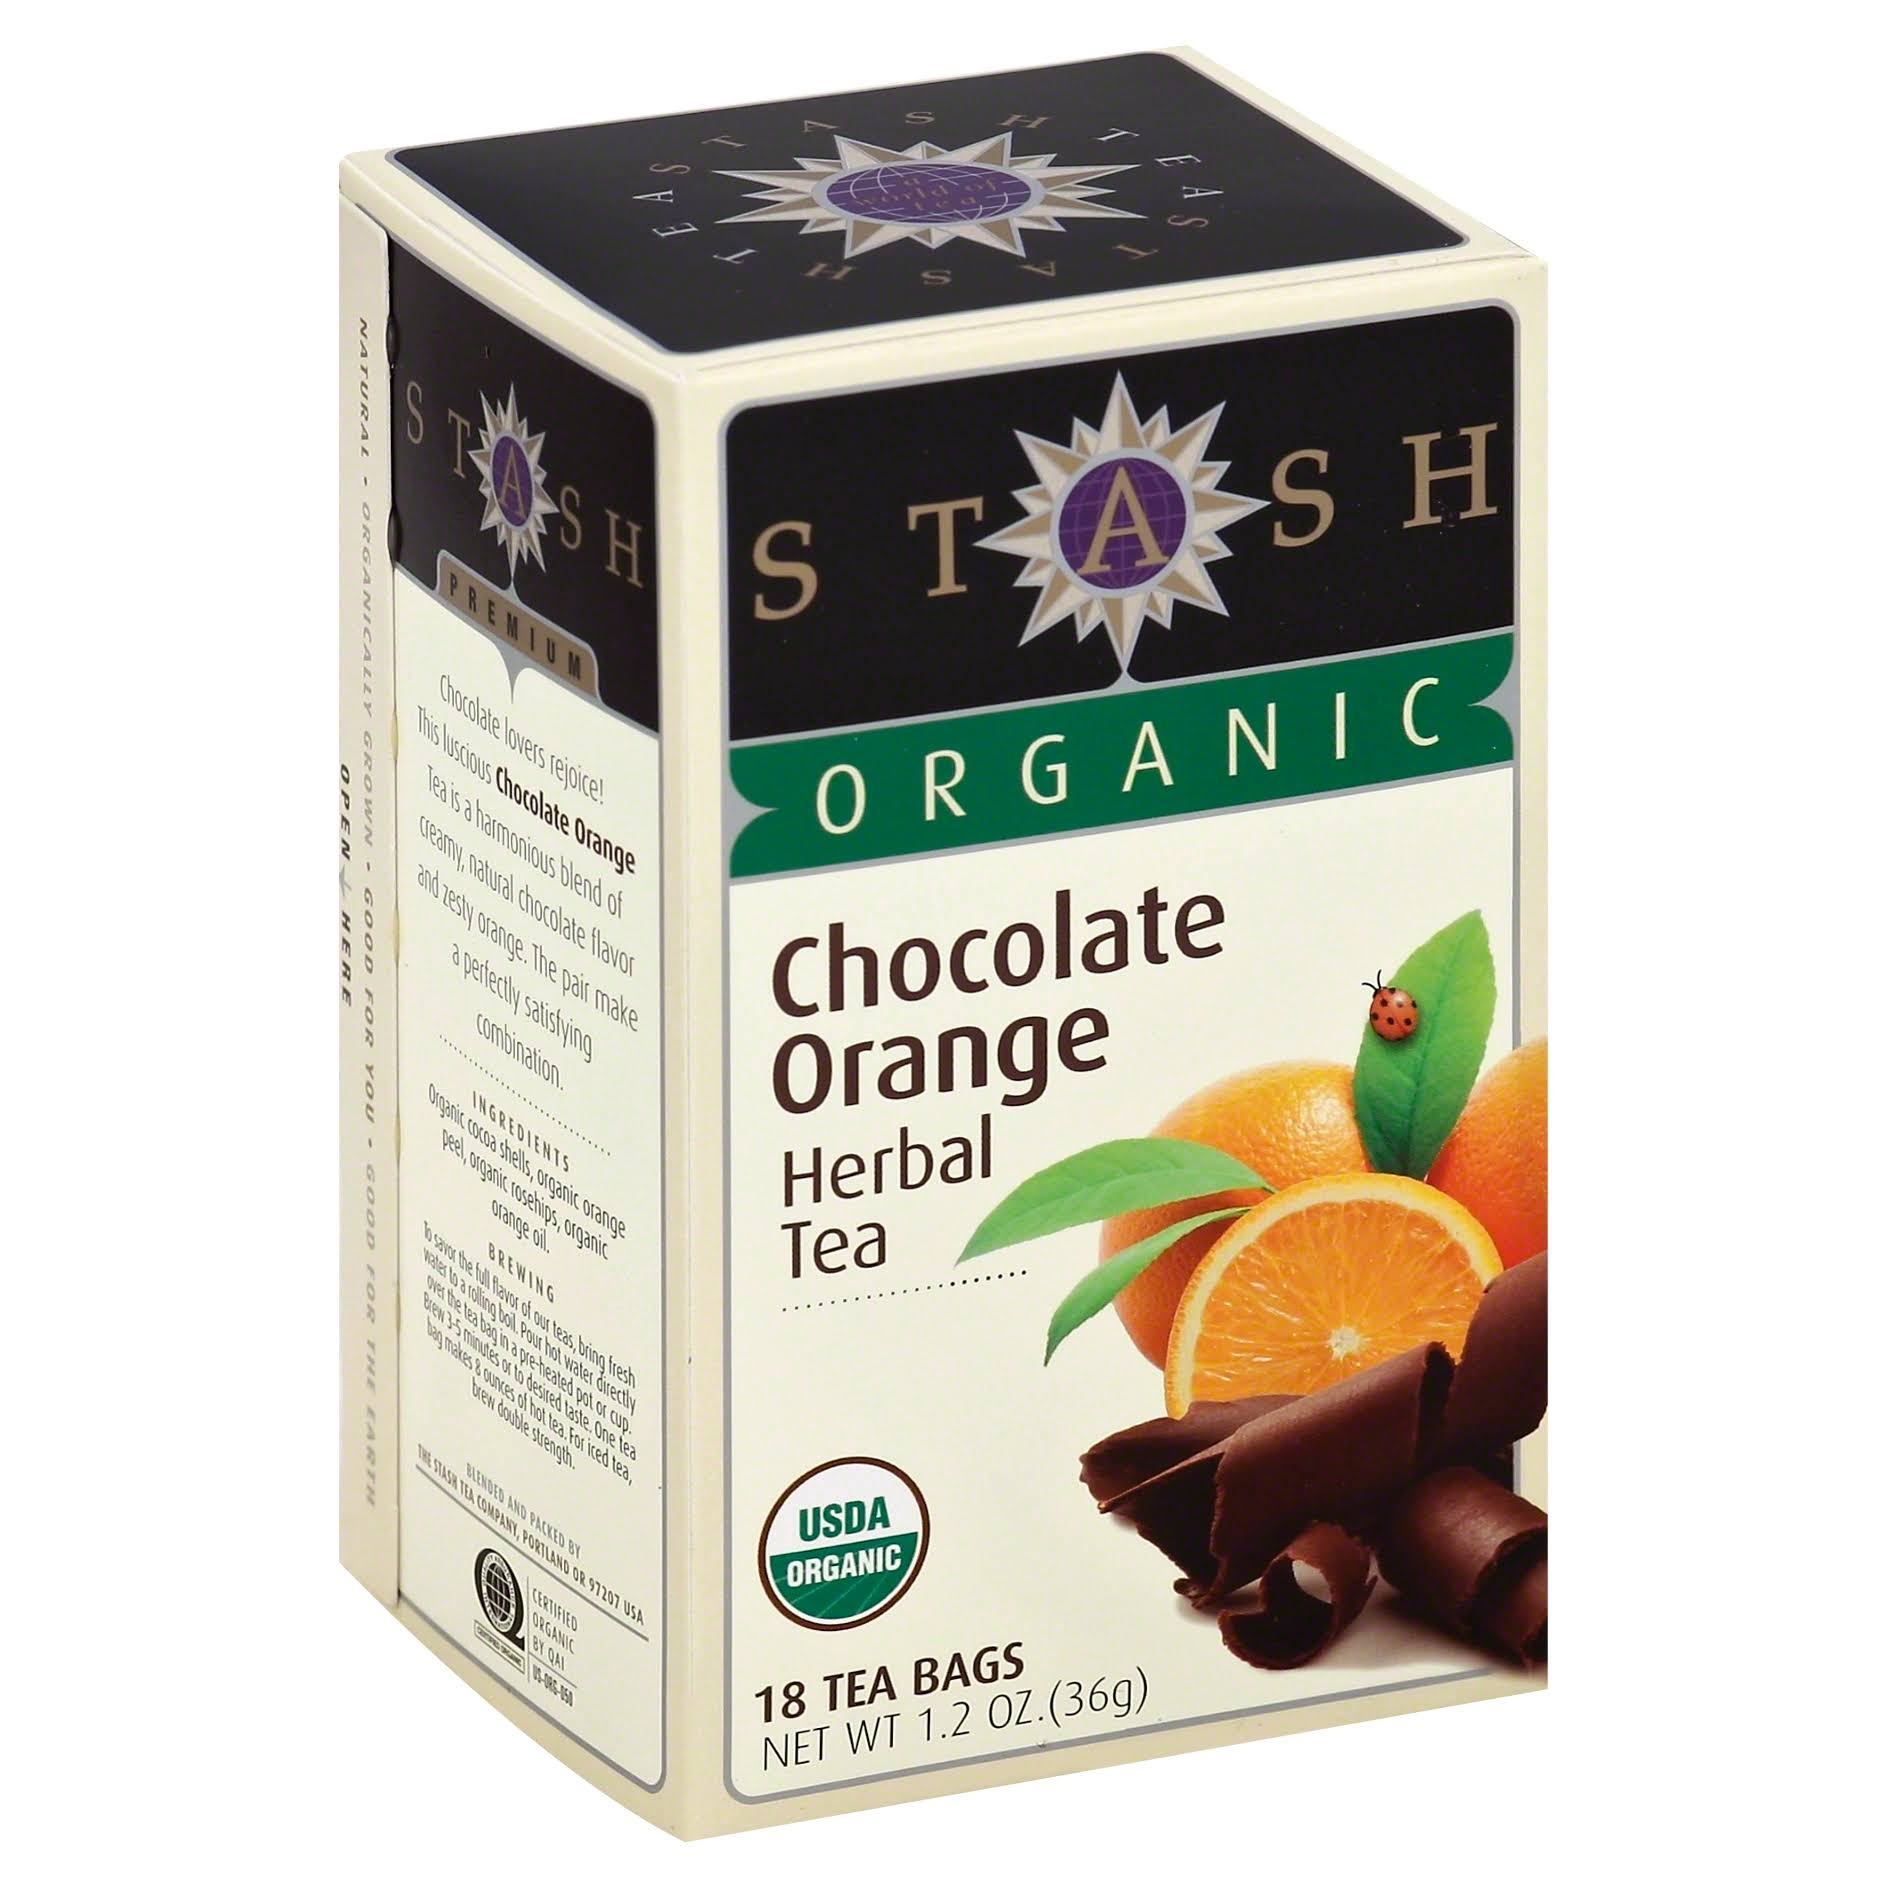 Stash Tea Organic Chocolate Orange Herbal Tea - 18 Tea Bags